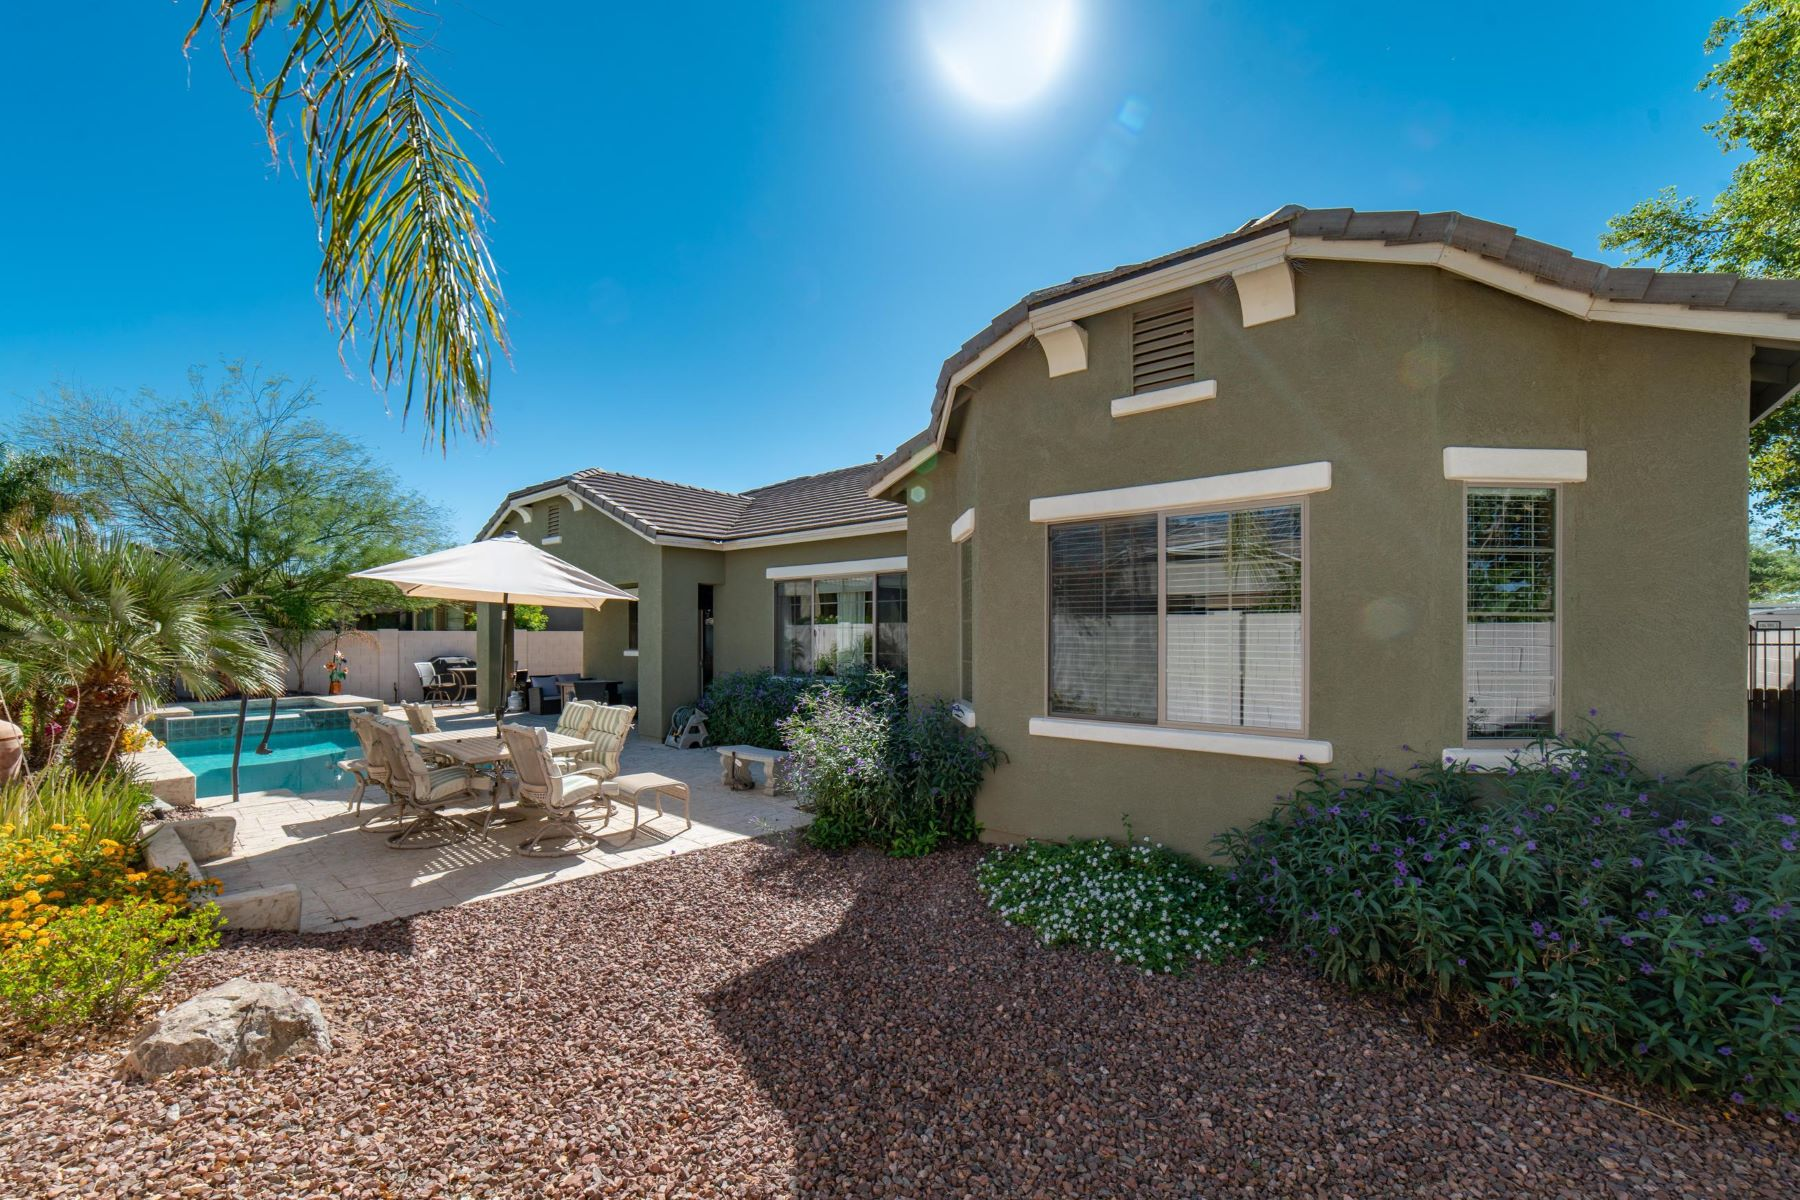 Single Family Homes for Sale at Canyon Trails 16760 W HILTON AVE Goodyear, Arizona 85338 United States